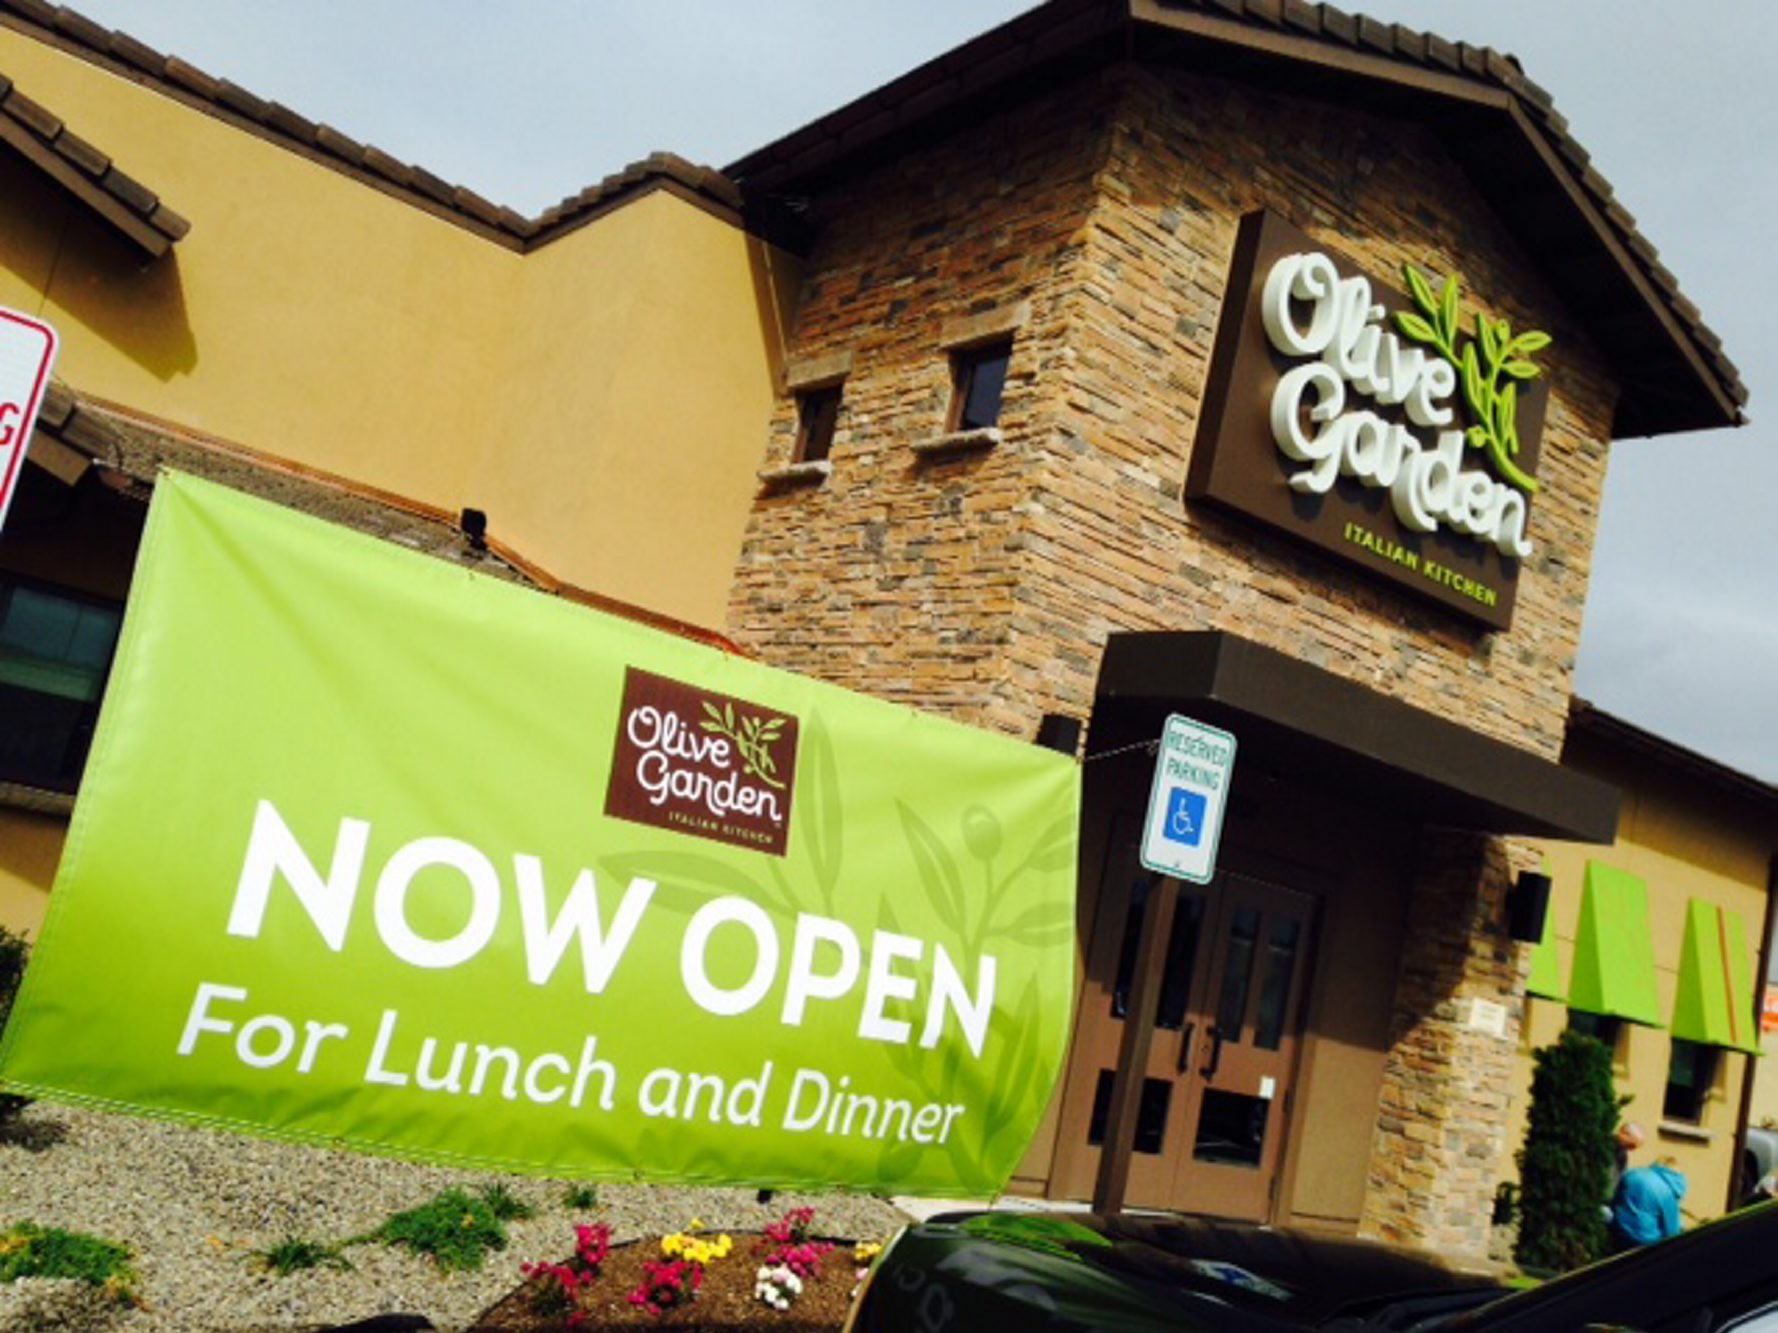 The new-style Olive Garden that opened today in Hamburg. (Robert Kirkham/Buffalo News)